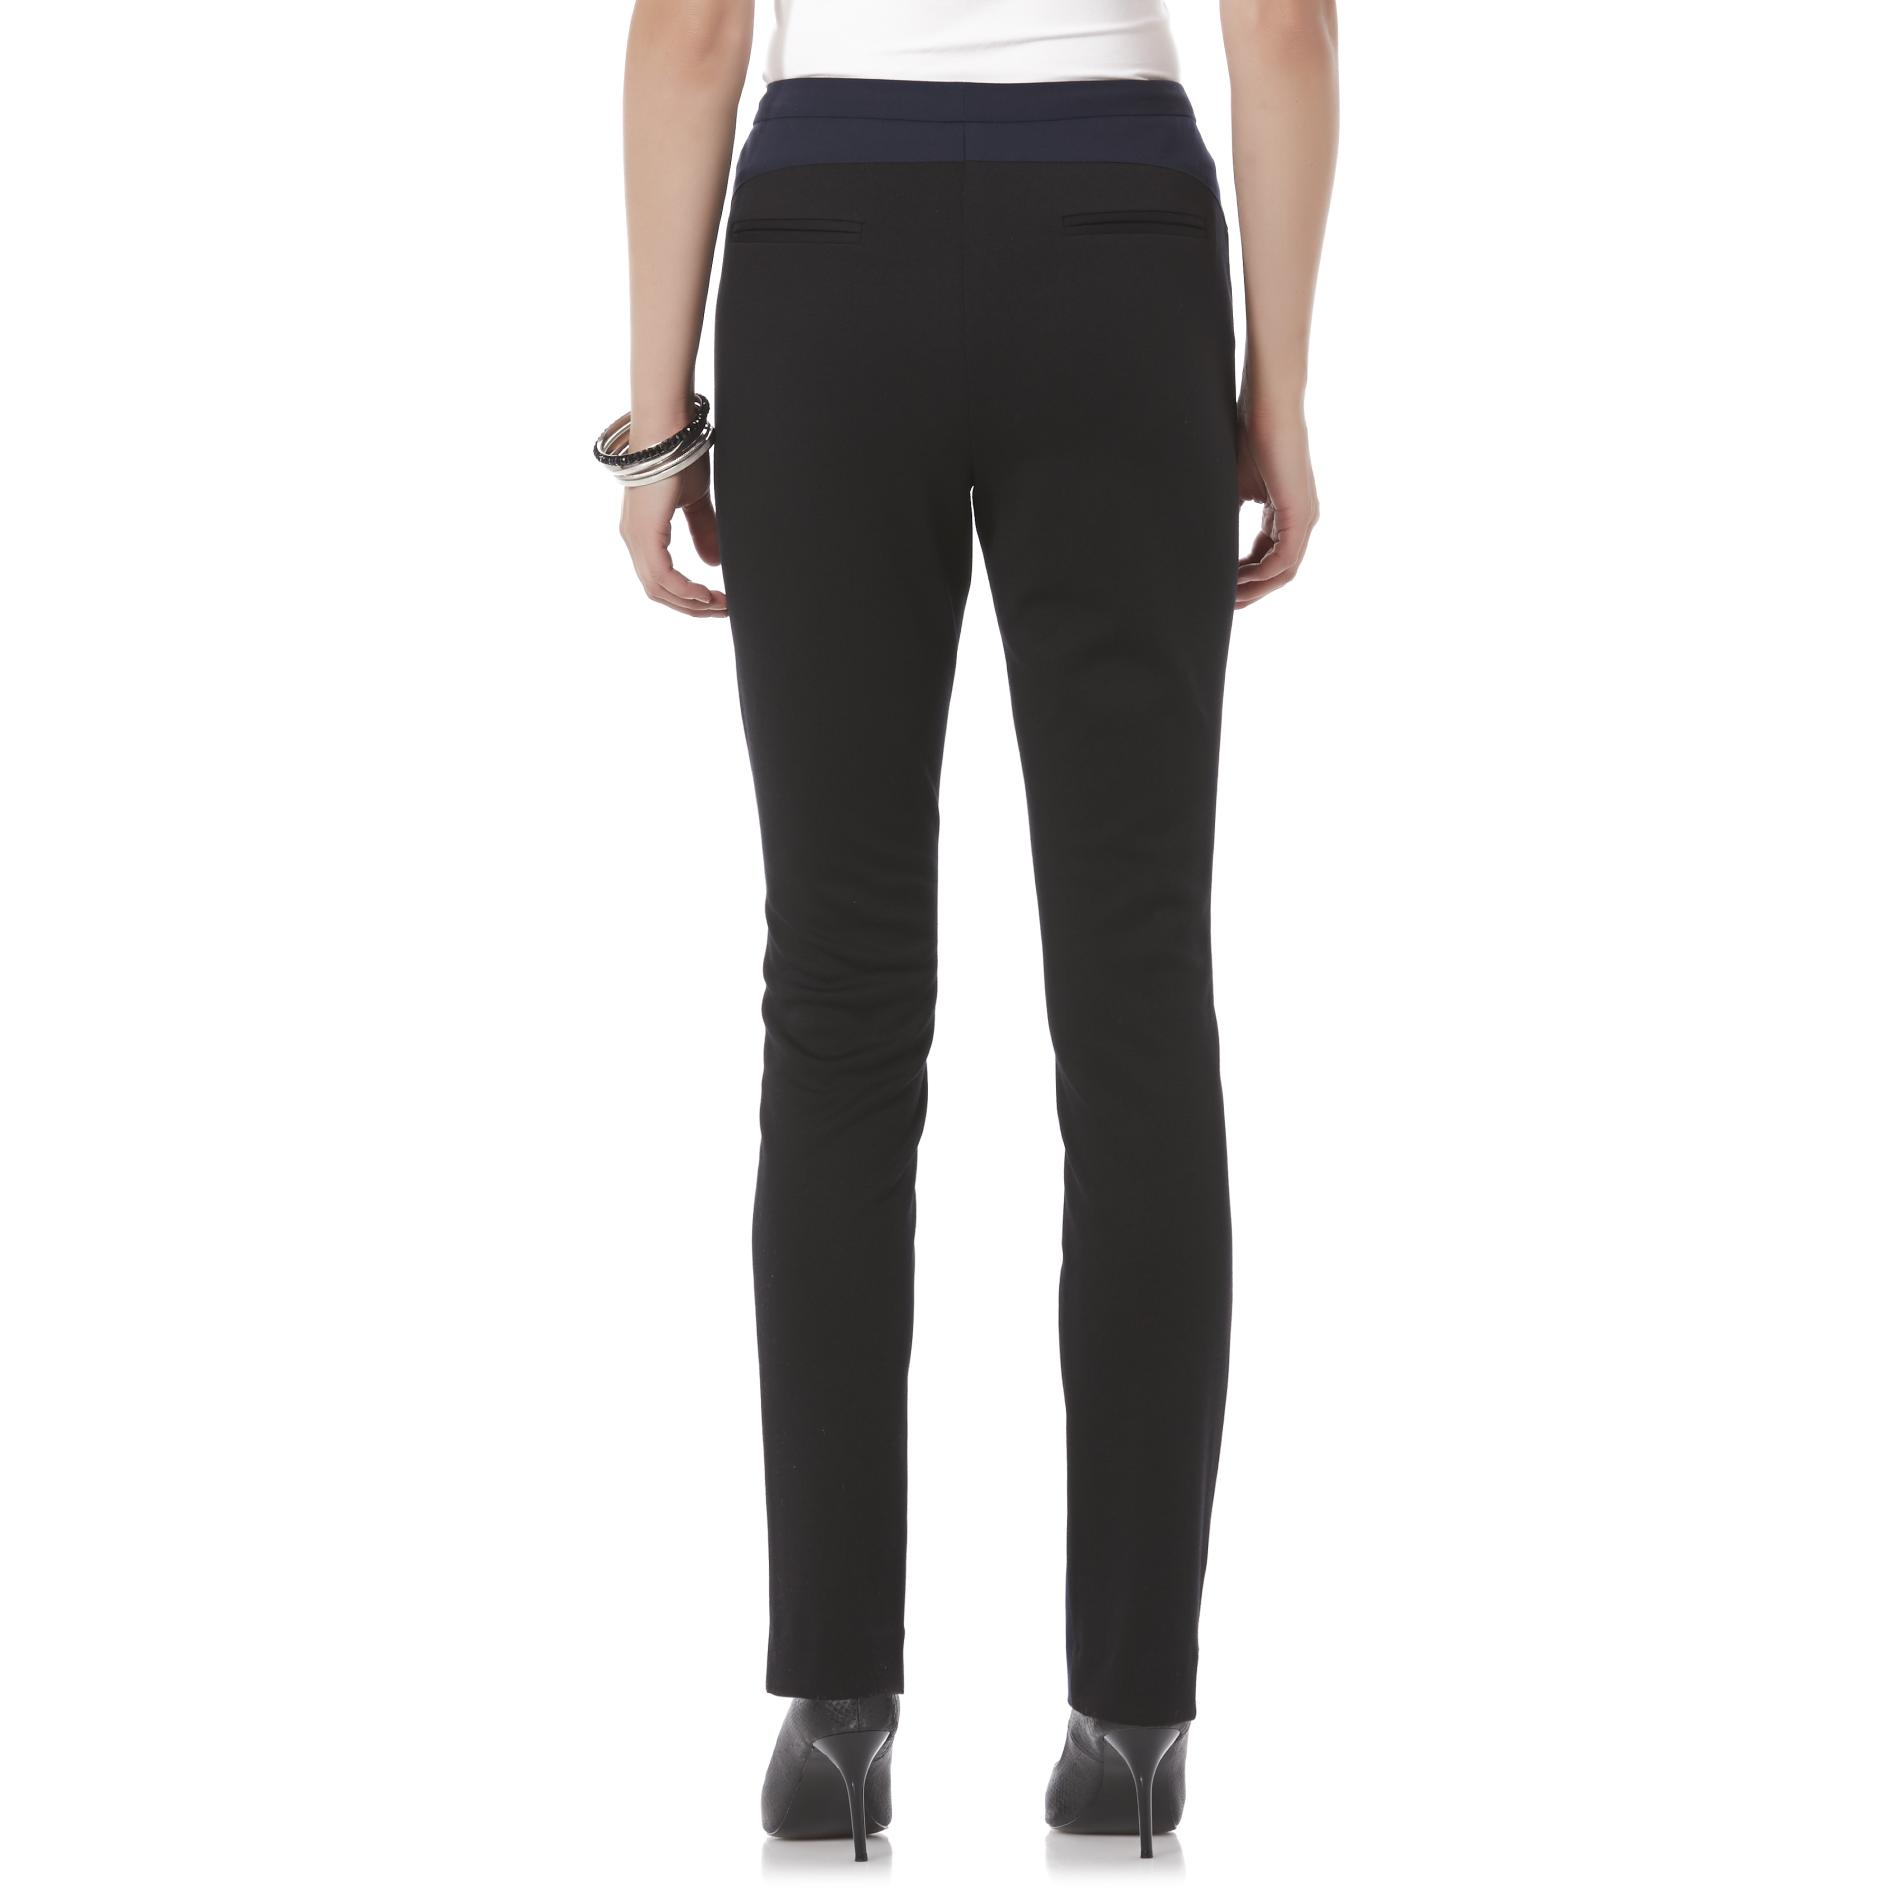 Metaphor Women's Flat Front Knit Pants - Colorblock